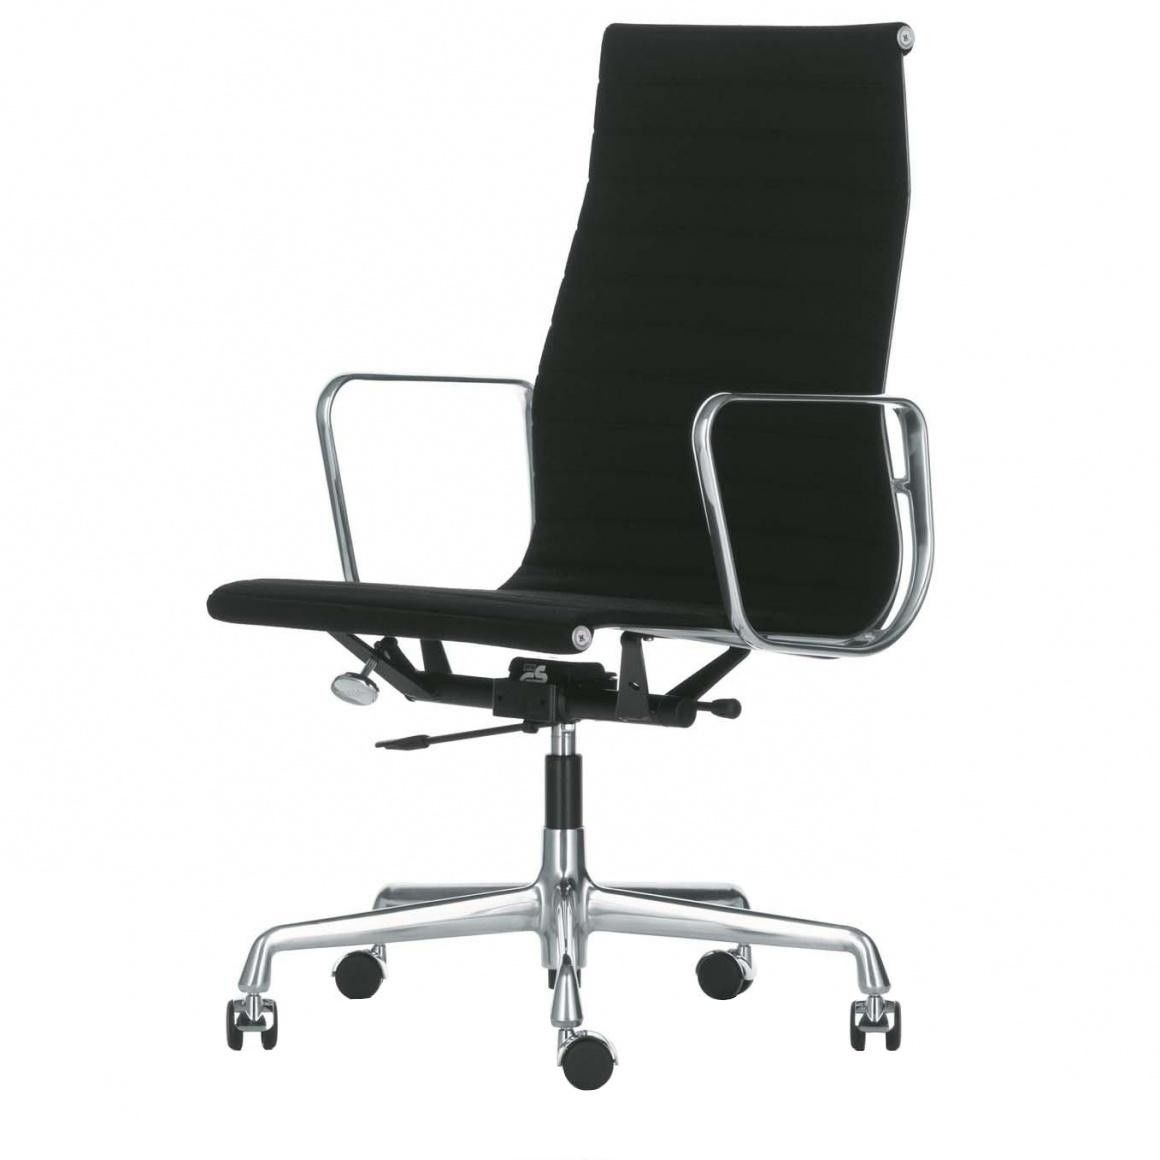 Vitra ea 119 aluminium chair b rostuhl vitra for Charles eames fake